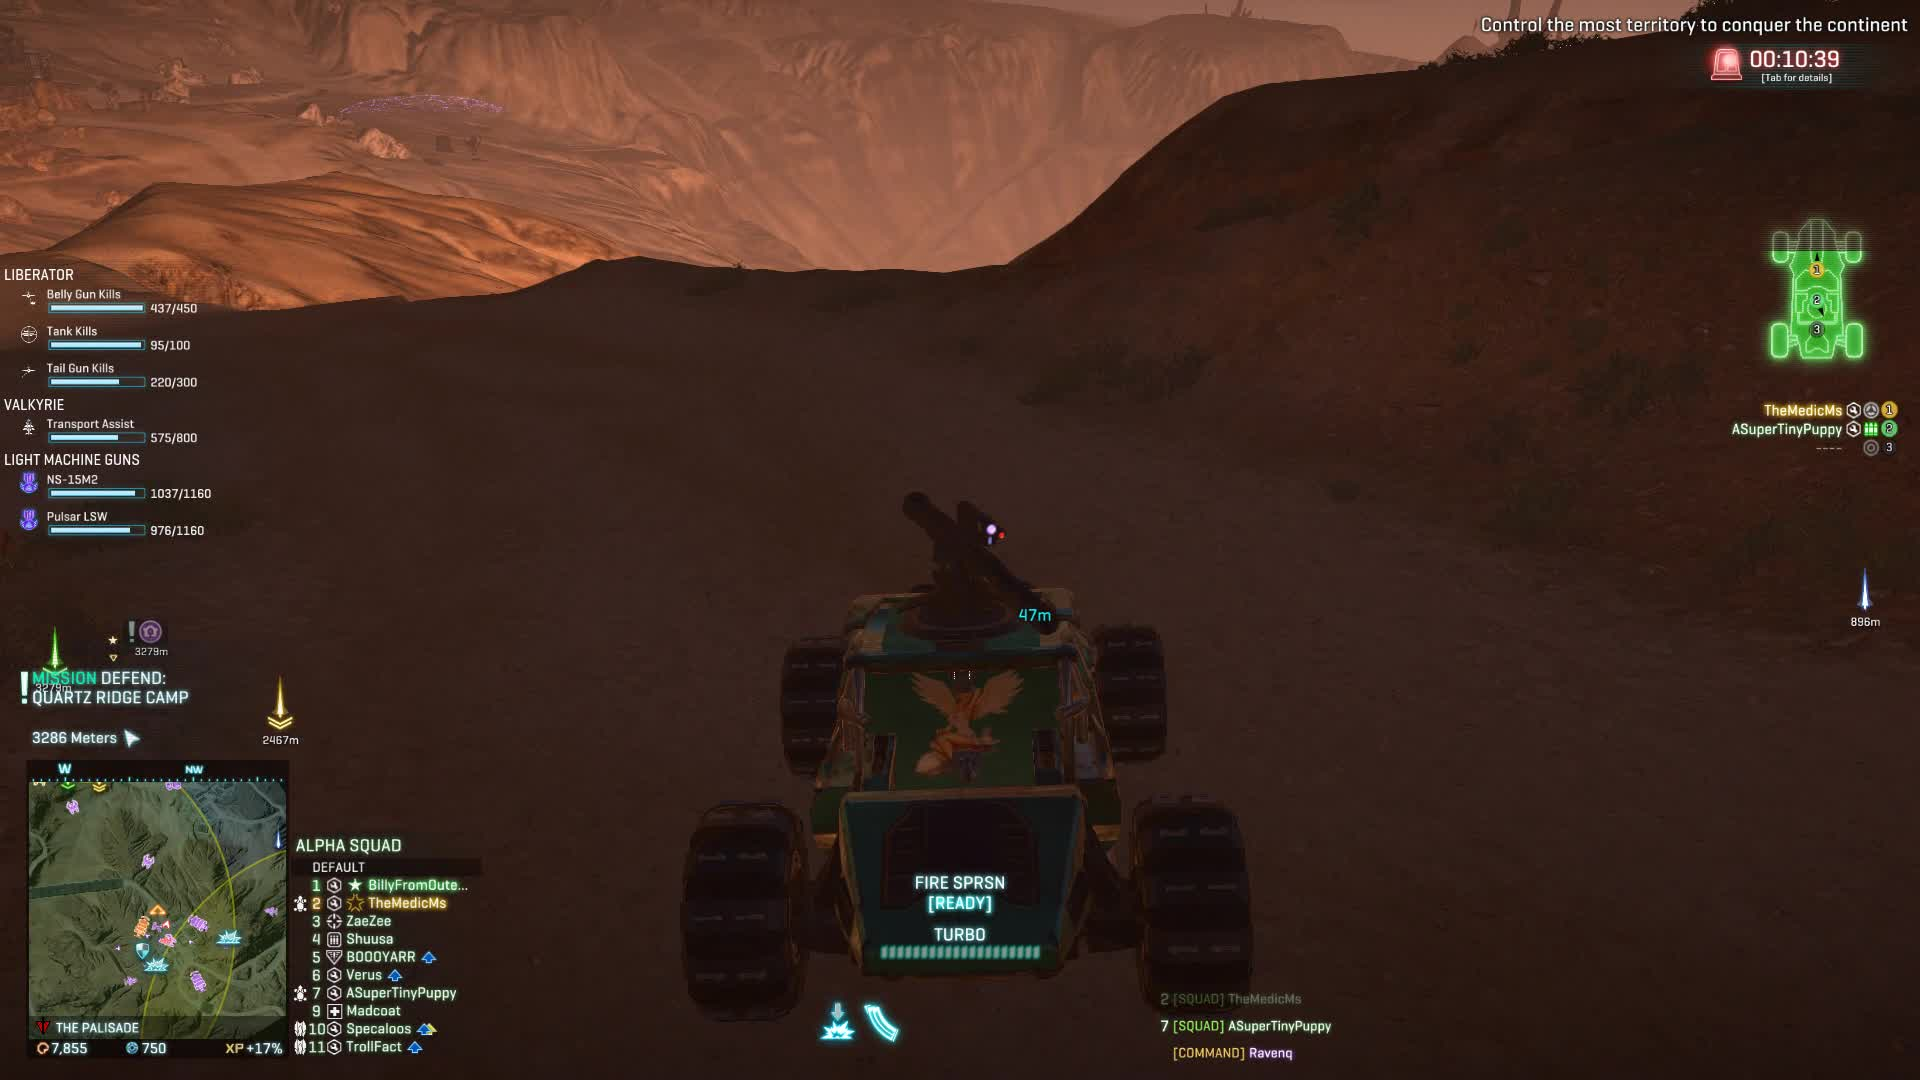 Harasser, Planetside, Nailed it. GIFs